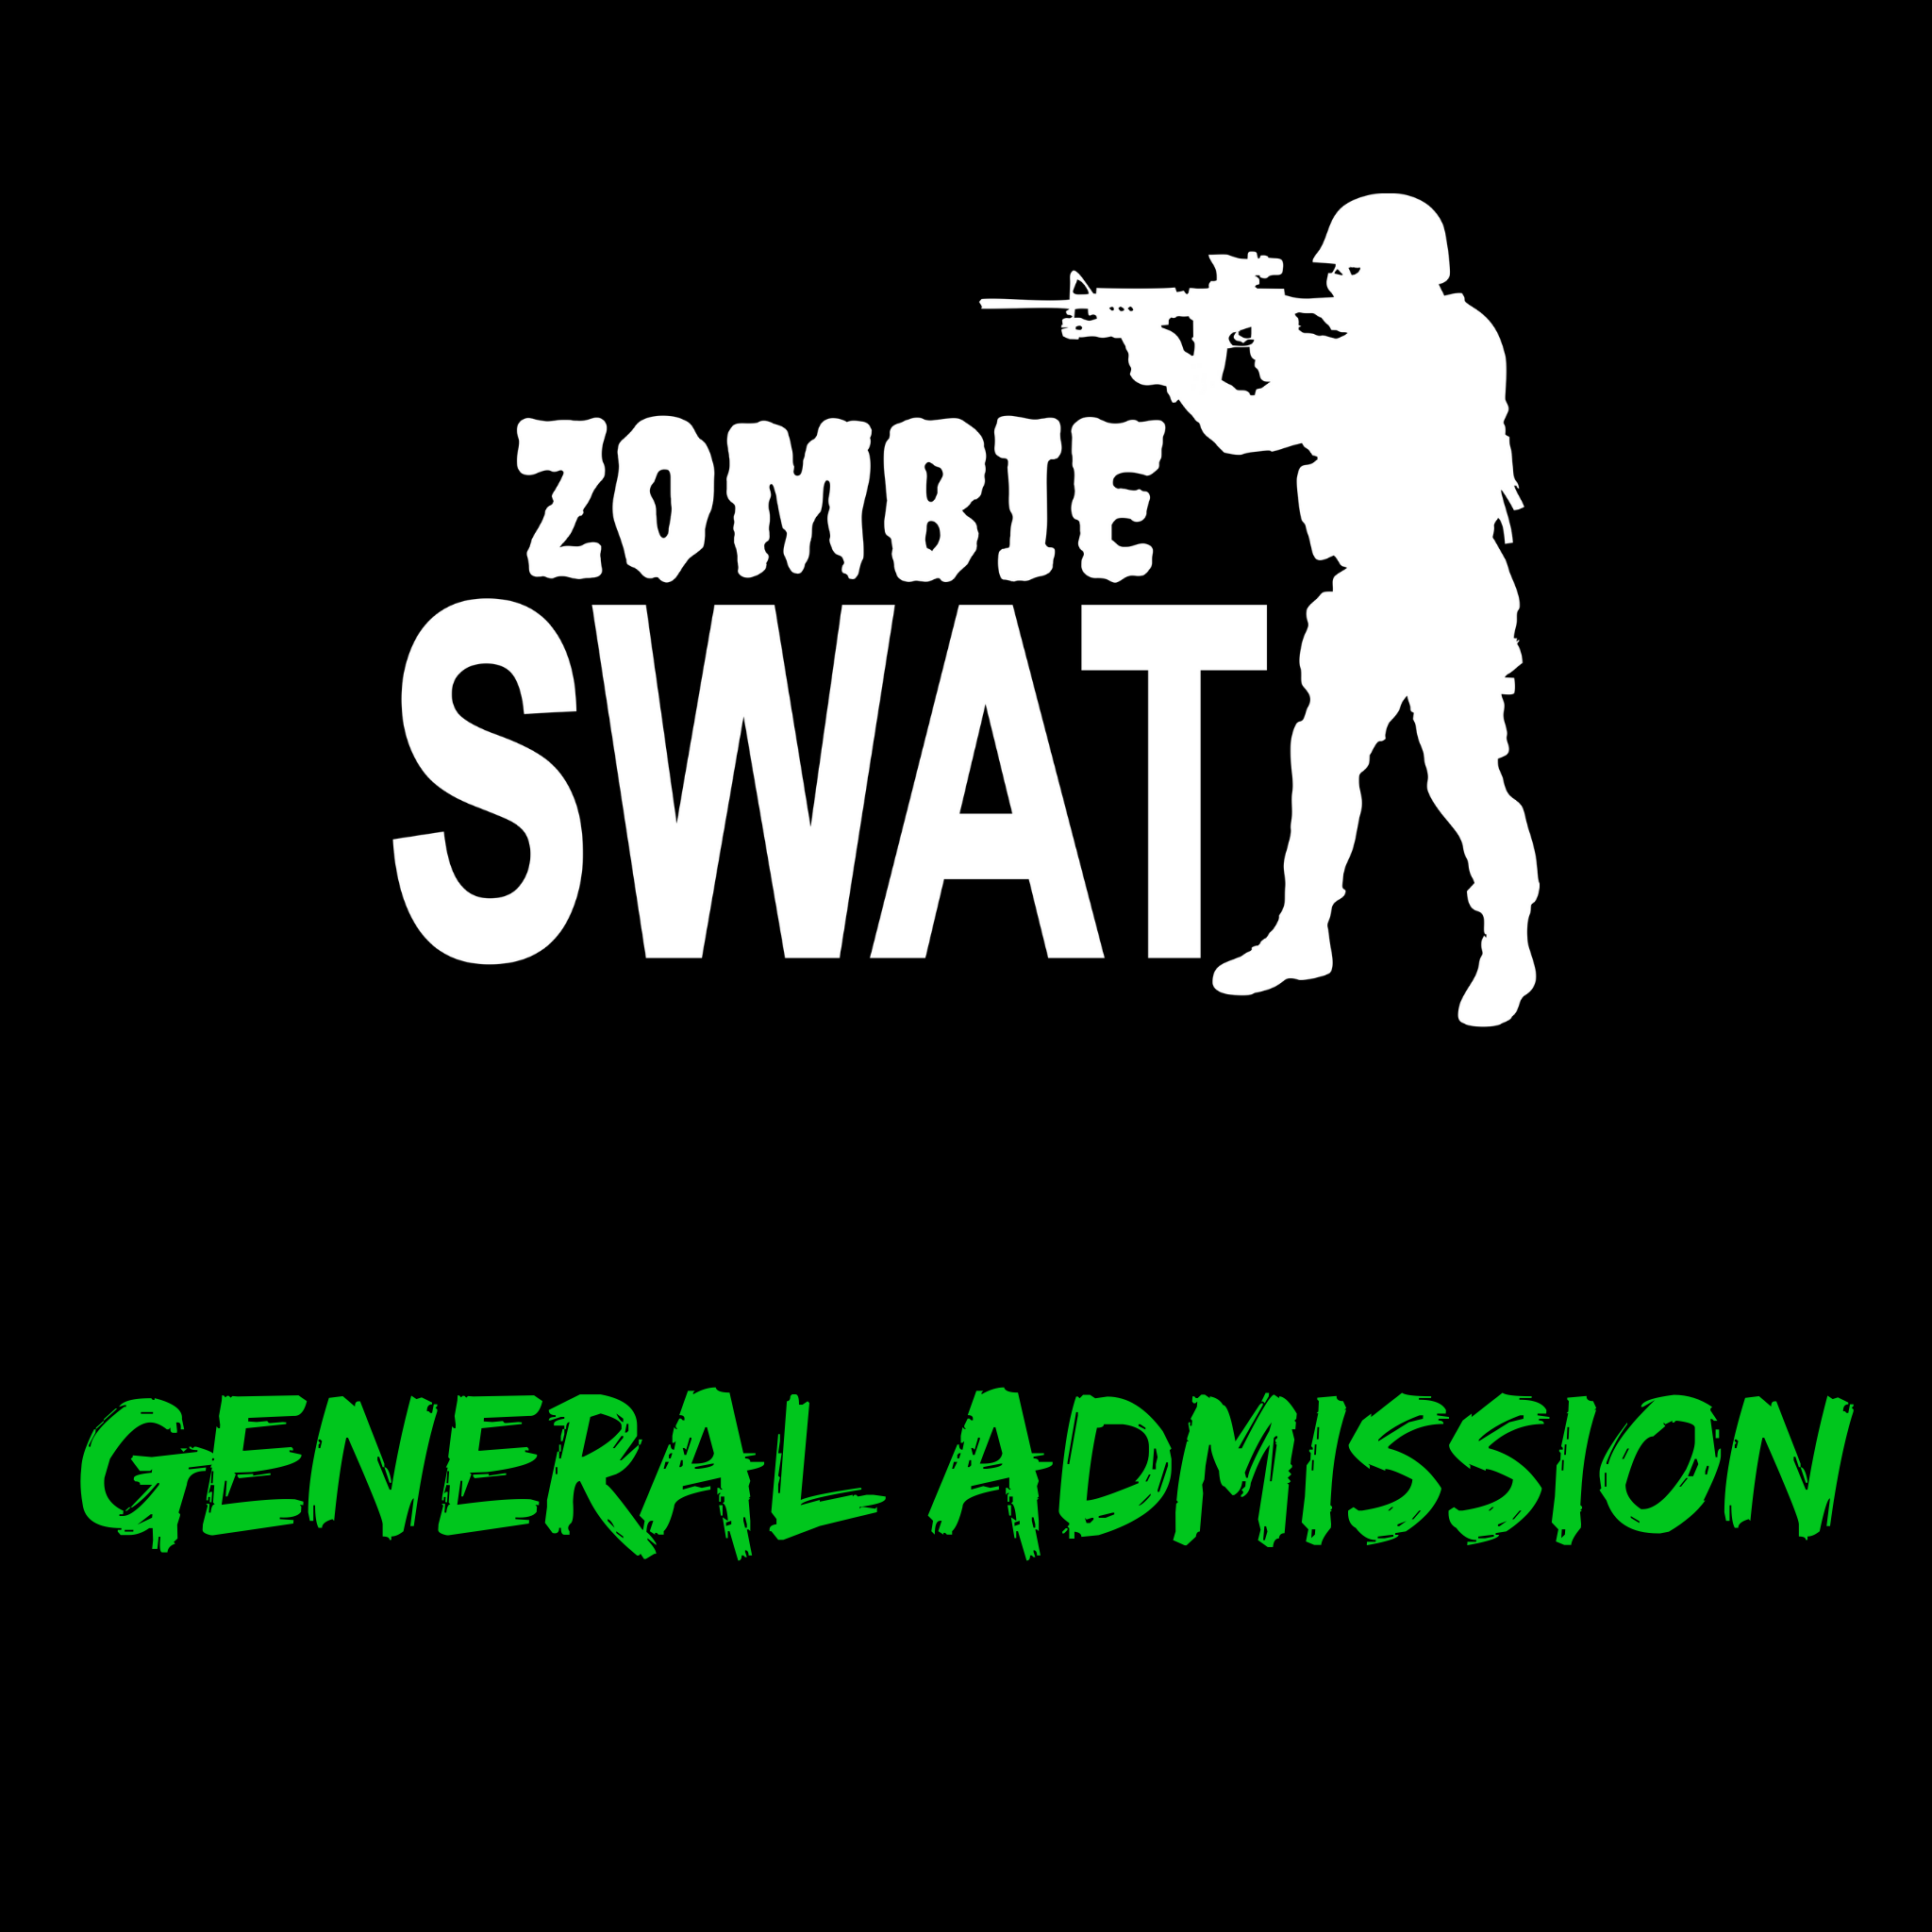 KneeKnocker Woods Zombie Swat General Admission